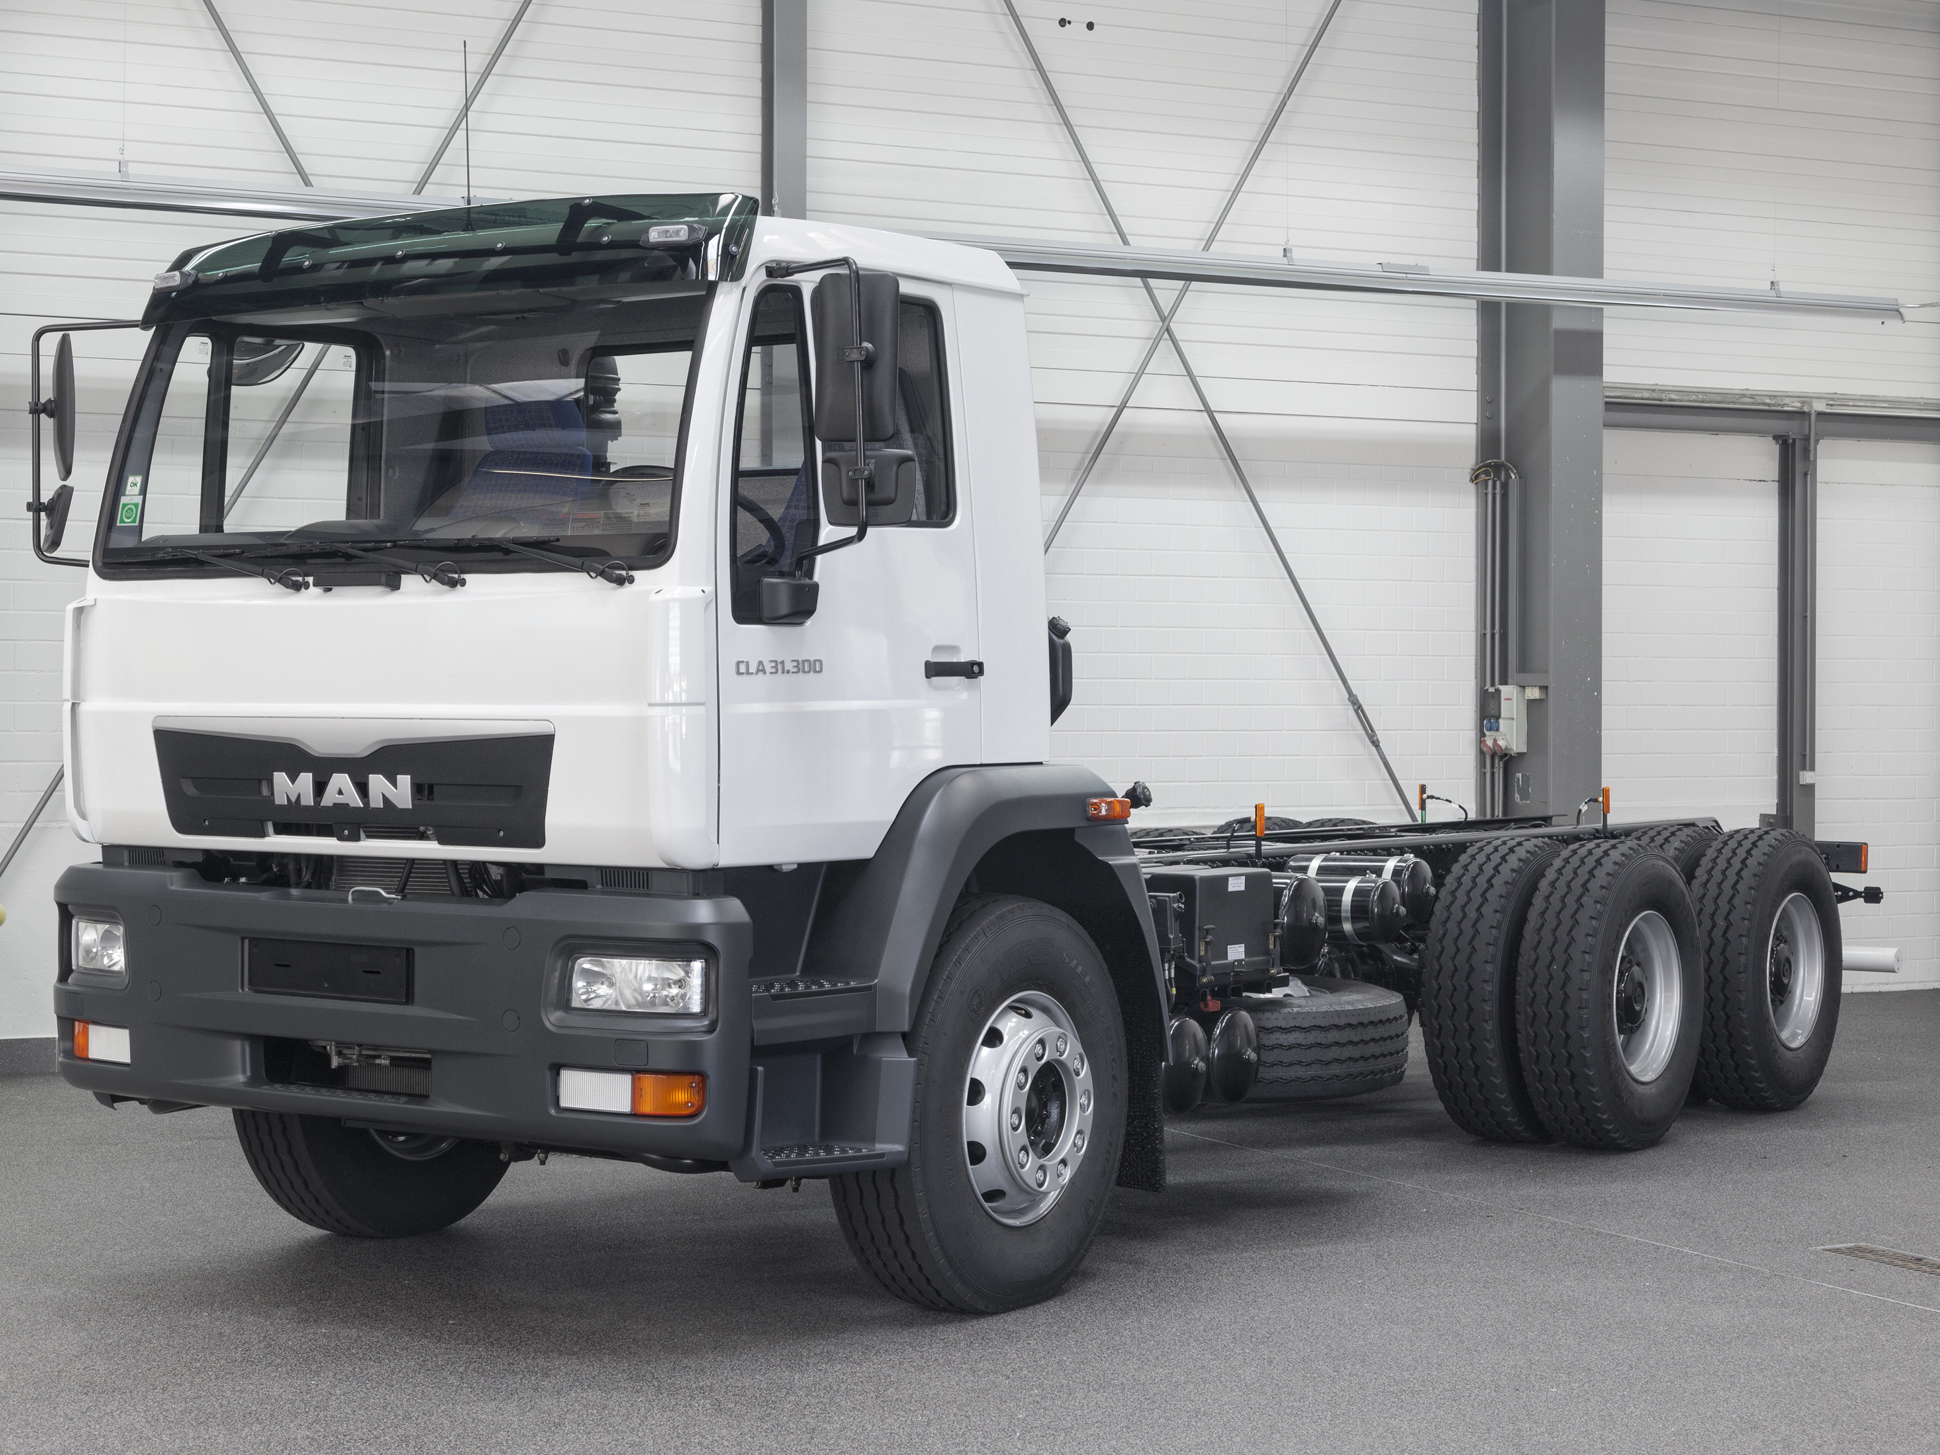 The MAN CLA series currently covers tonnages from 15 to 37 tonnes gross vehicle weight.